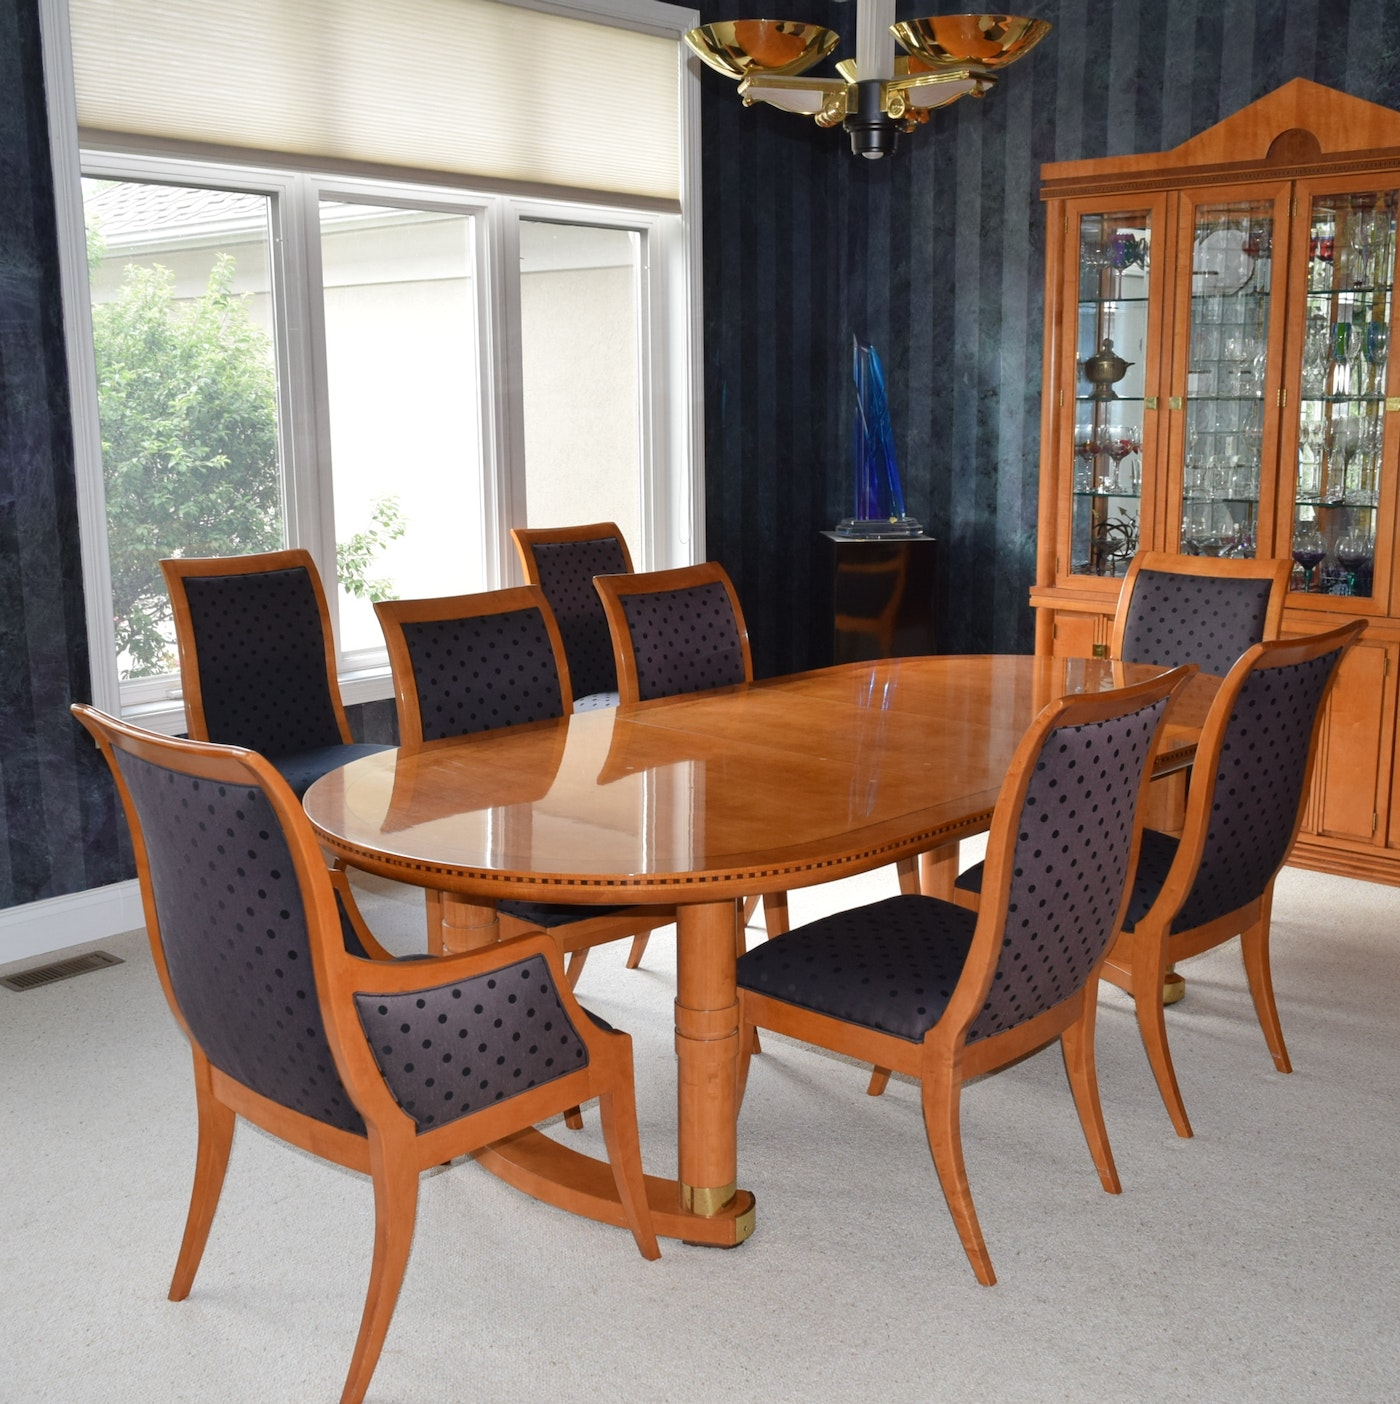 Formal Dining Table: Hickory White 'Genesis' Formal Dining Table With Eight